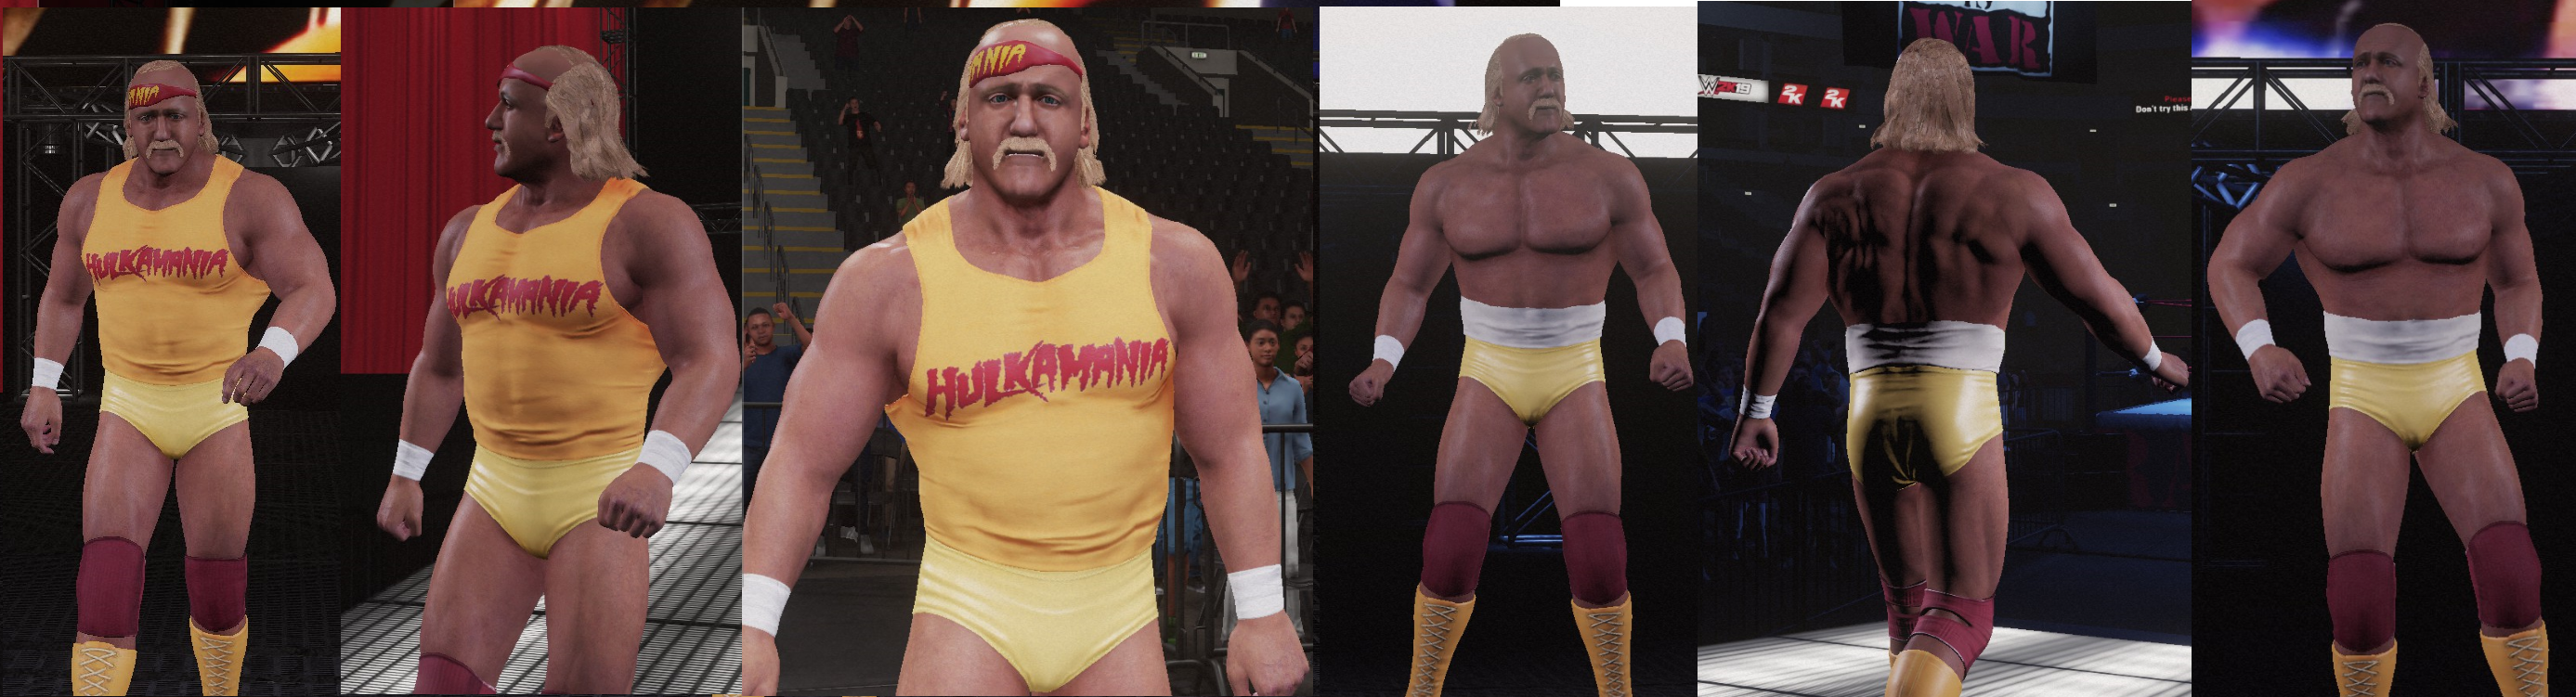 Hogan_wm2.png